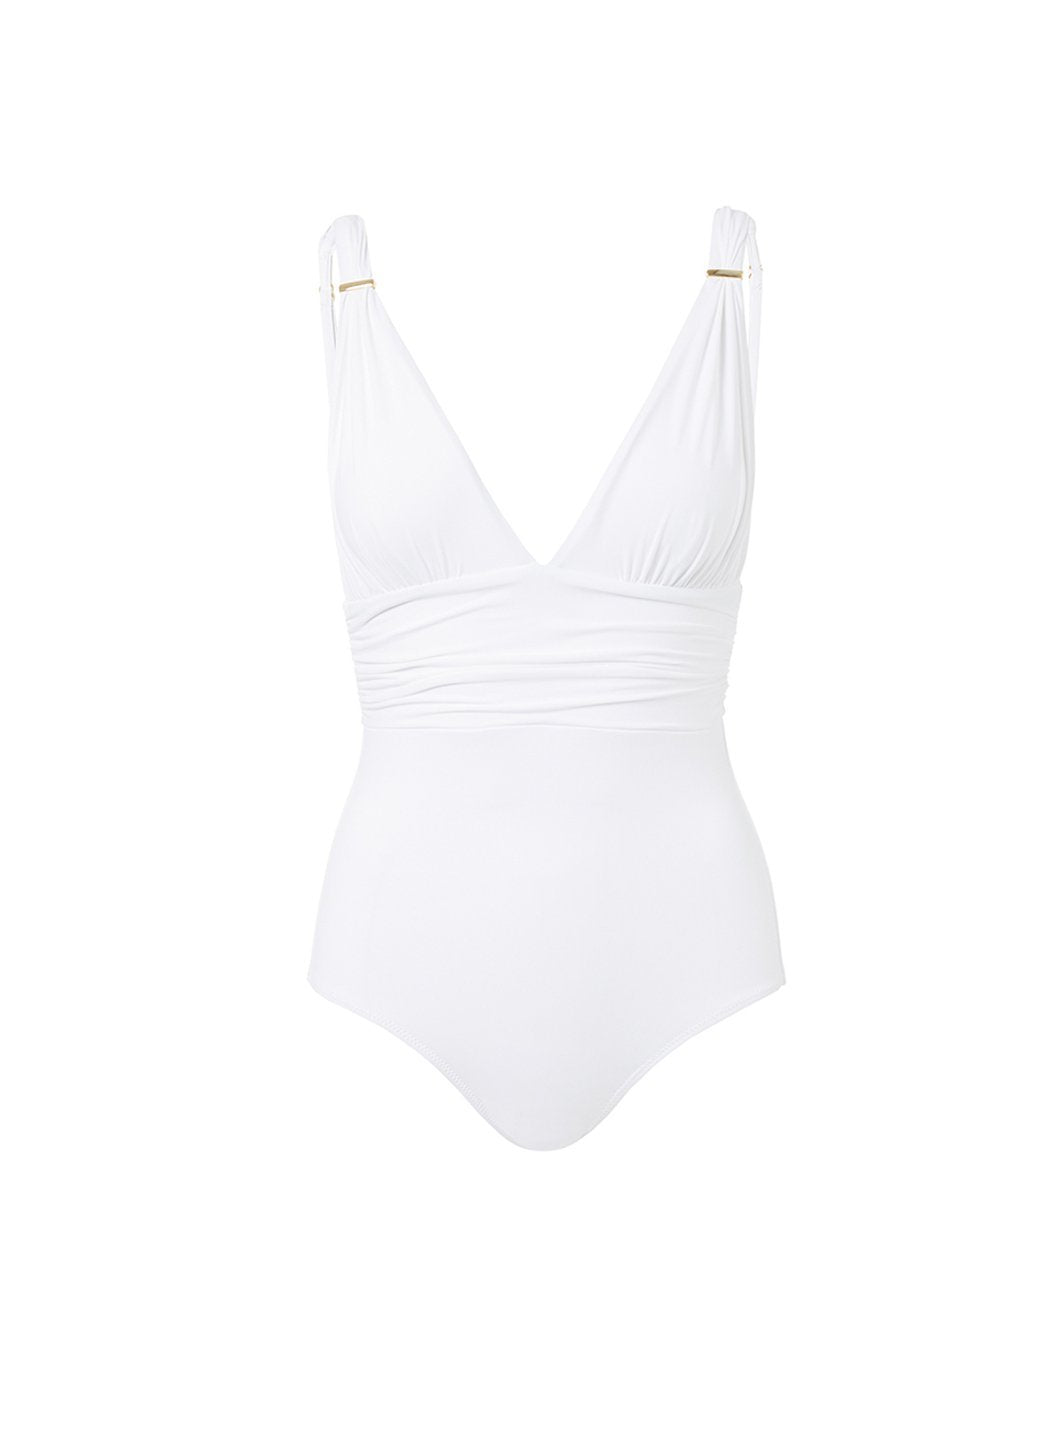 panarea white classic overtheshoulder ruched onepiece swimsuit 2019